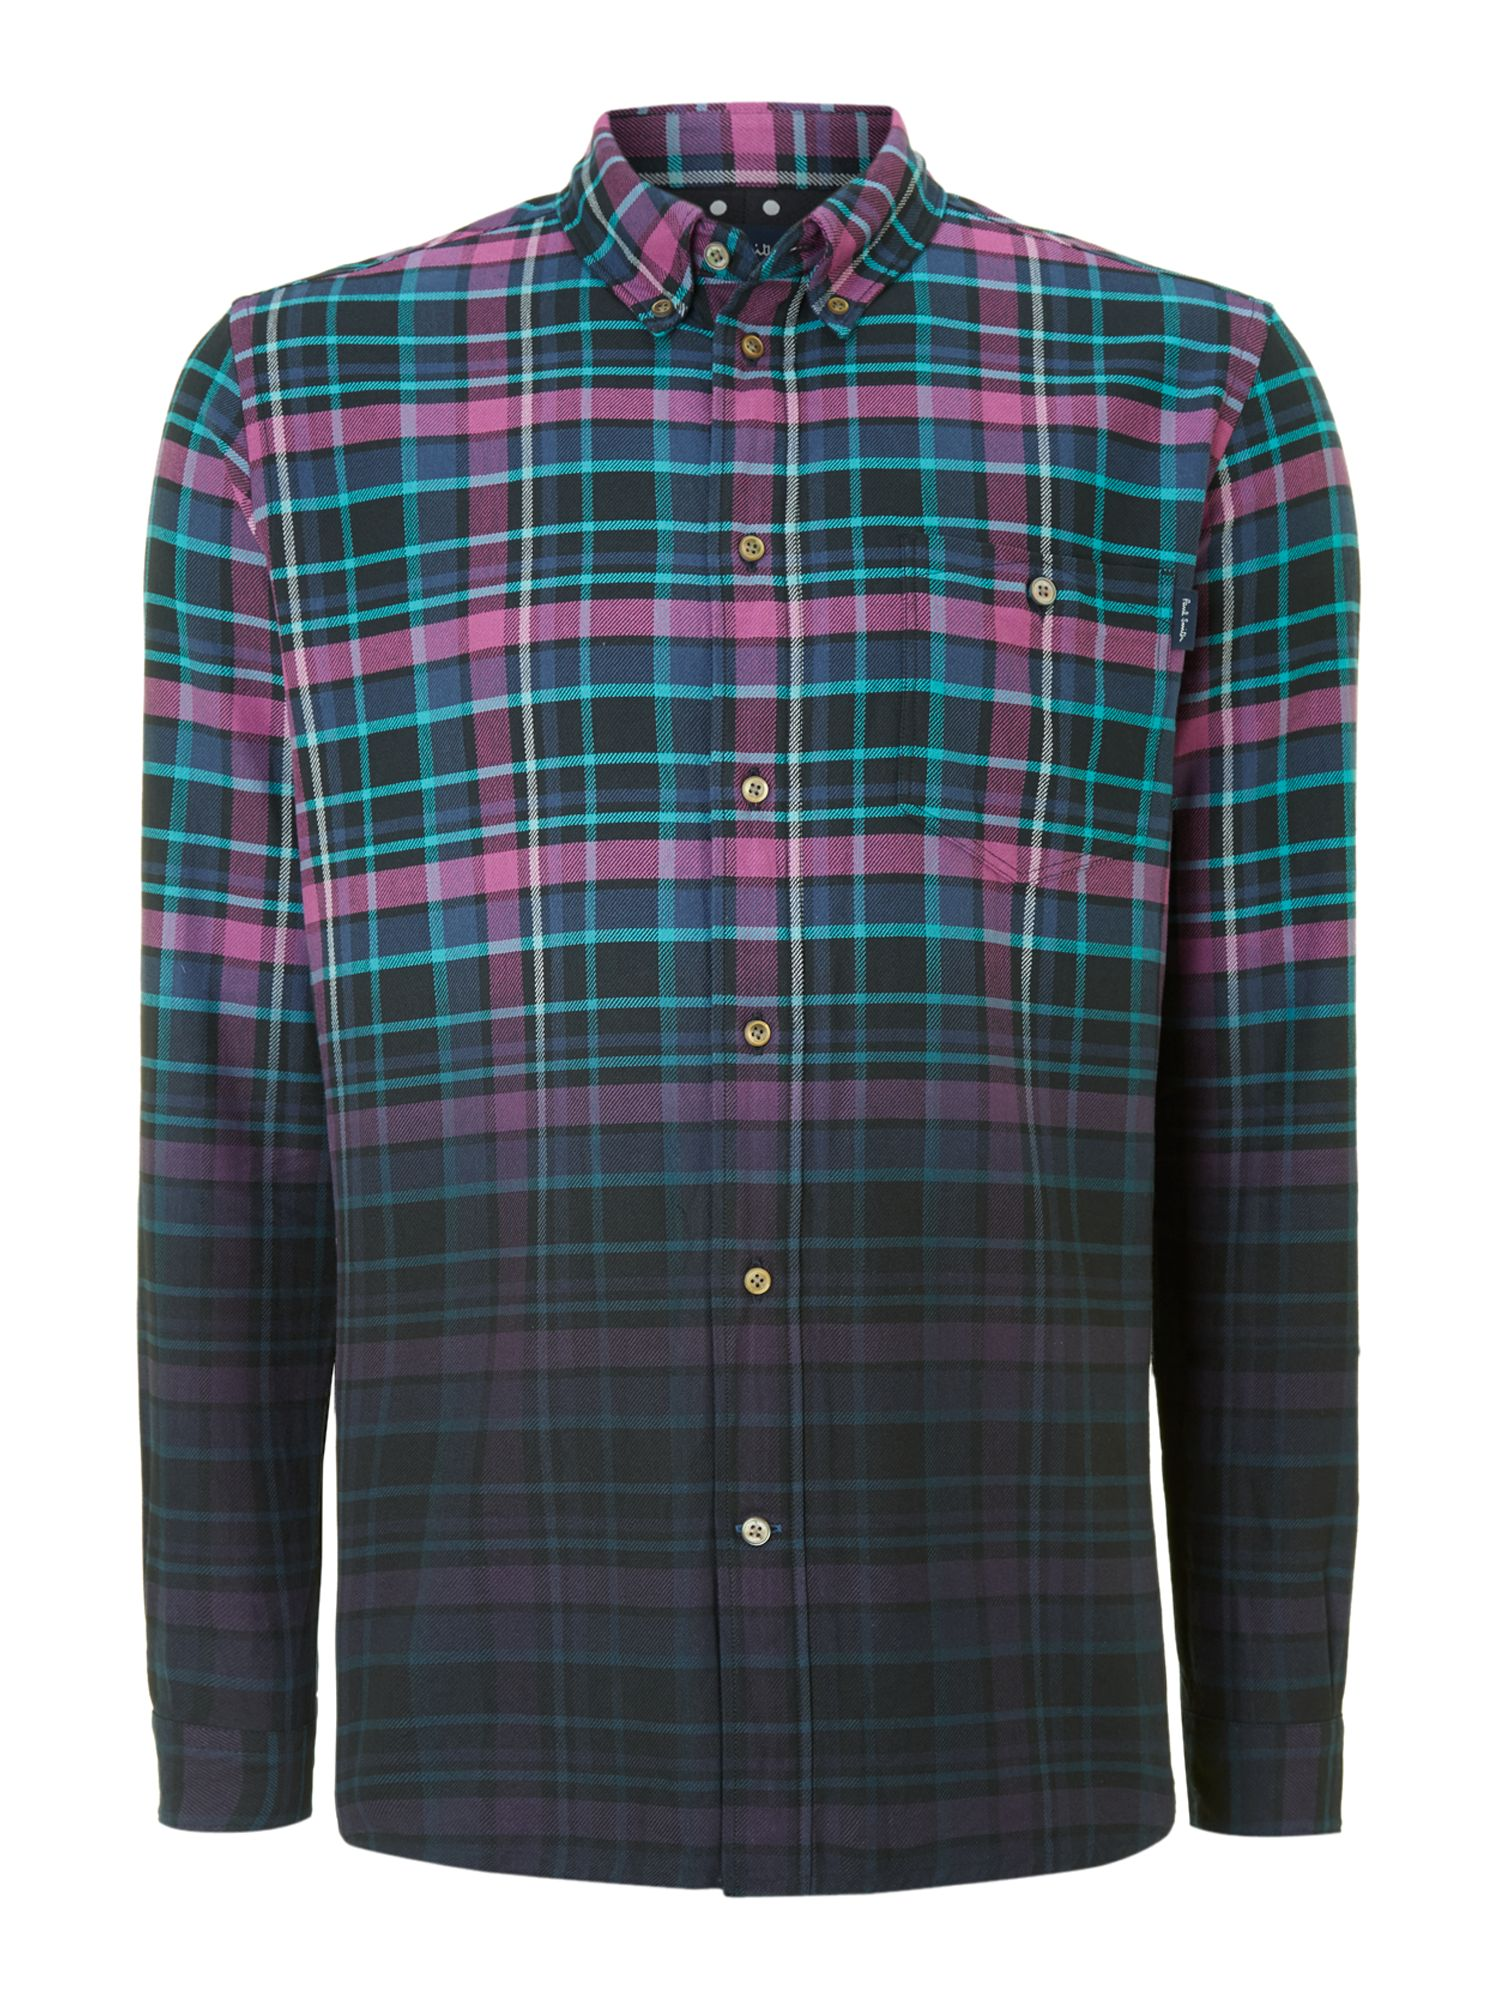 Long sleeve heavy twill check shirt